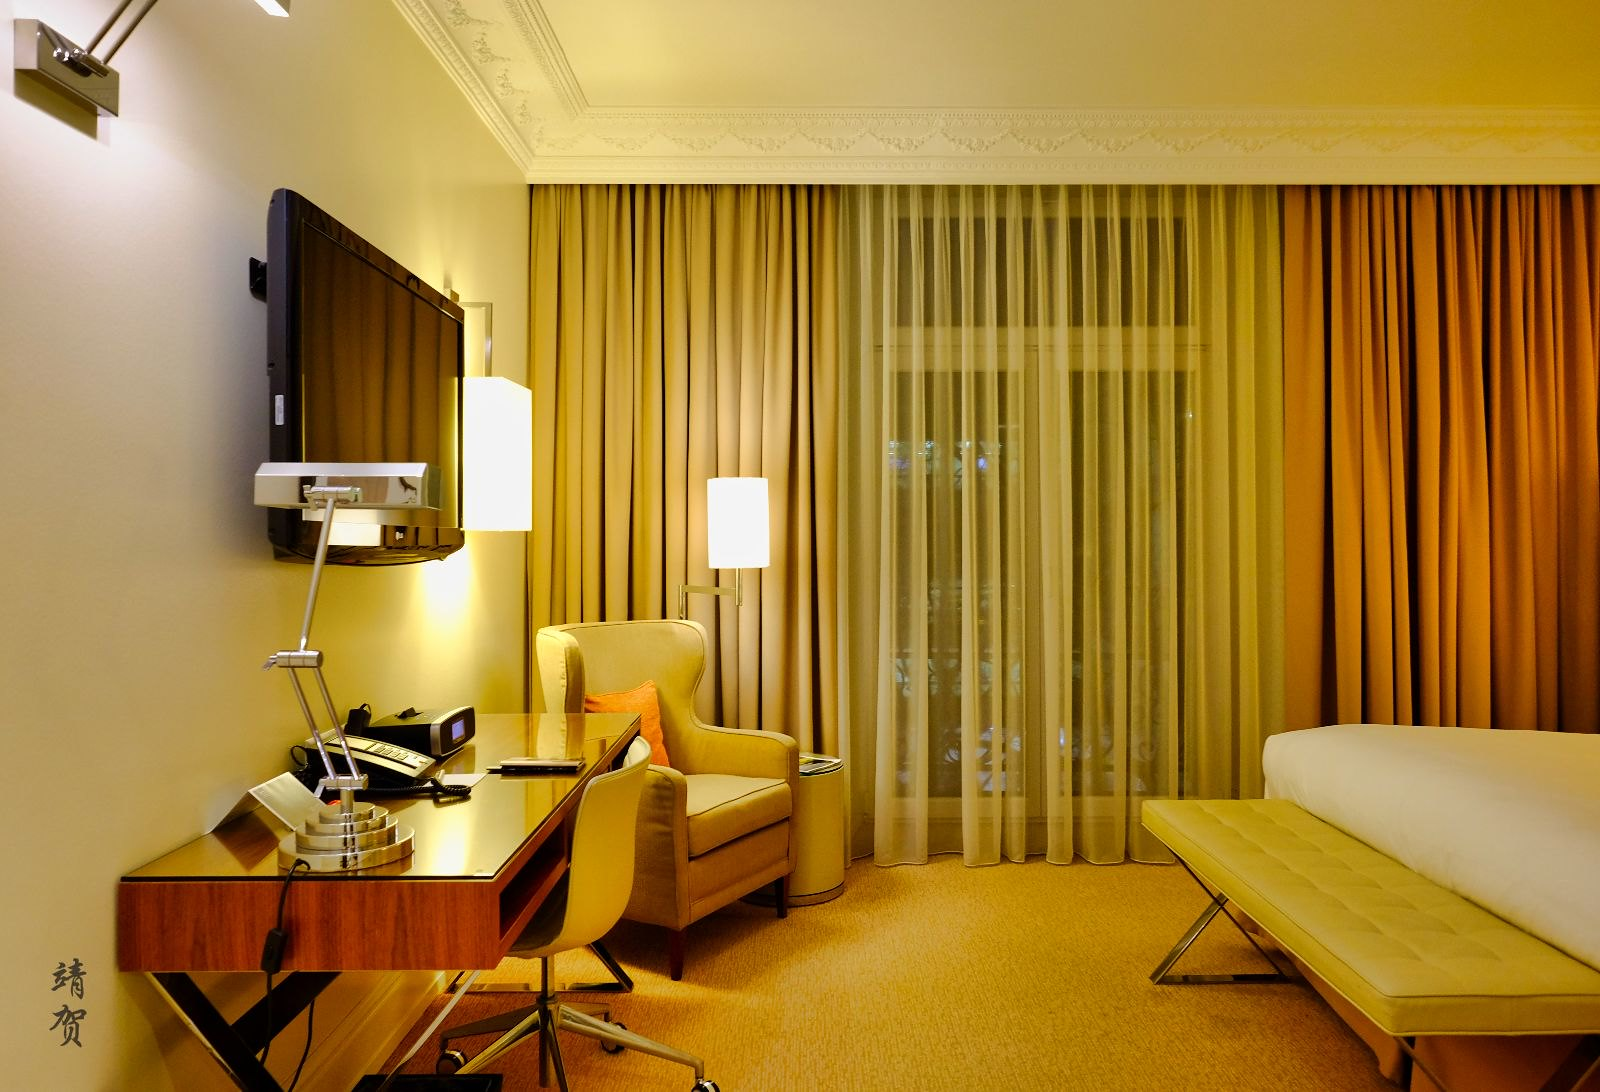 Inside the Deluxe room